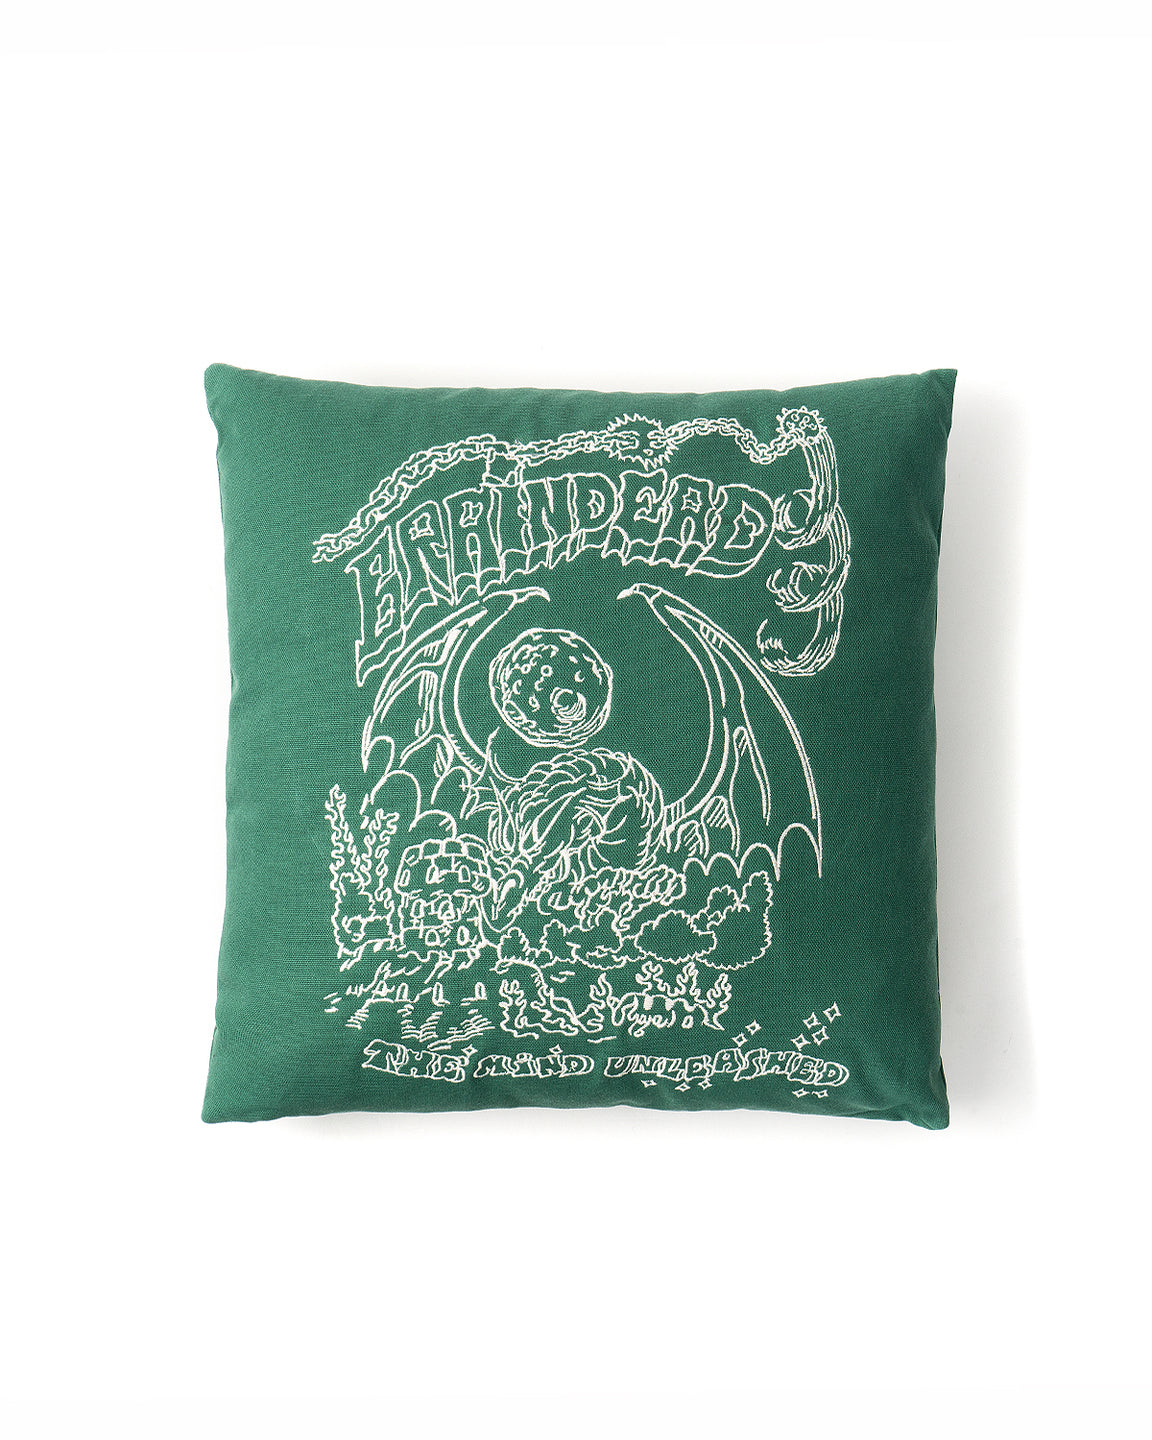 Kogan Unleashed Mind Embroidered Throw Pillow - Green